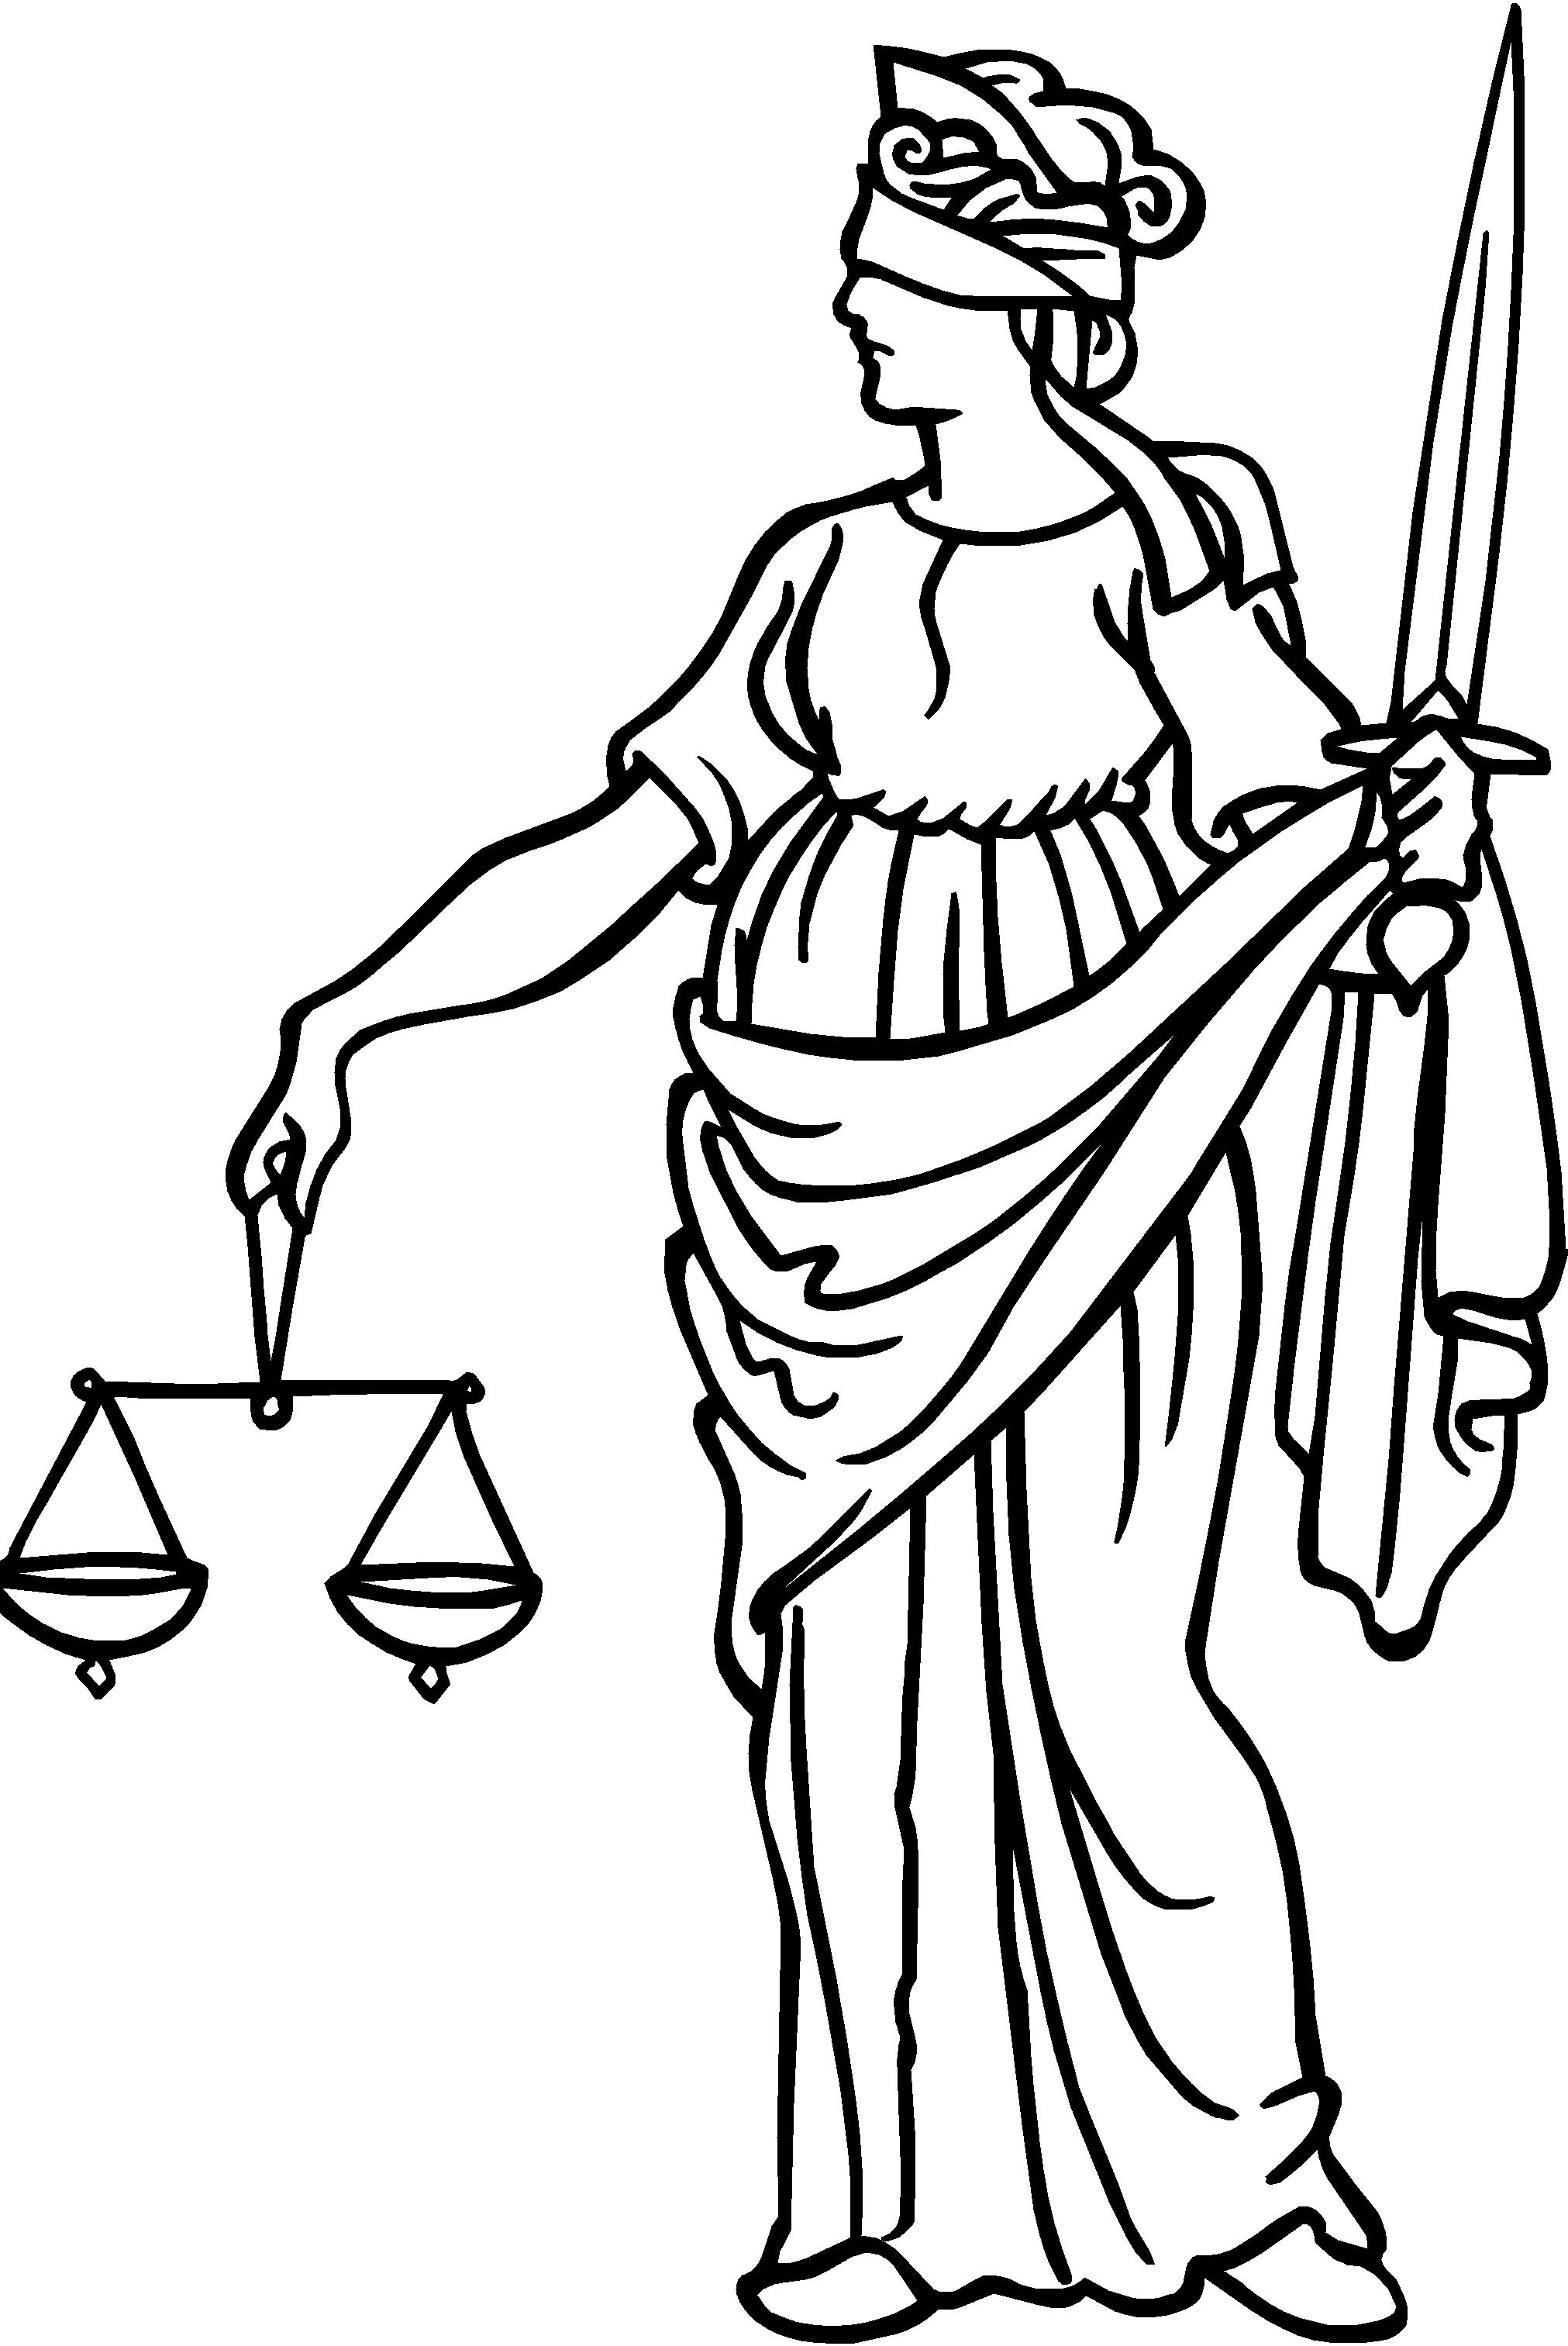 justice clipart cliparts co lady blind justice clipart lady justice clip art us supreme court